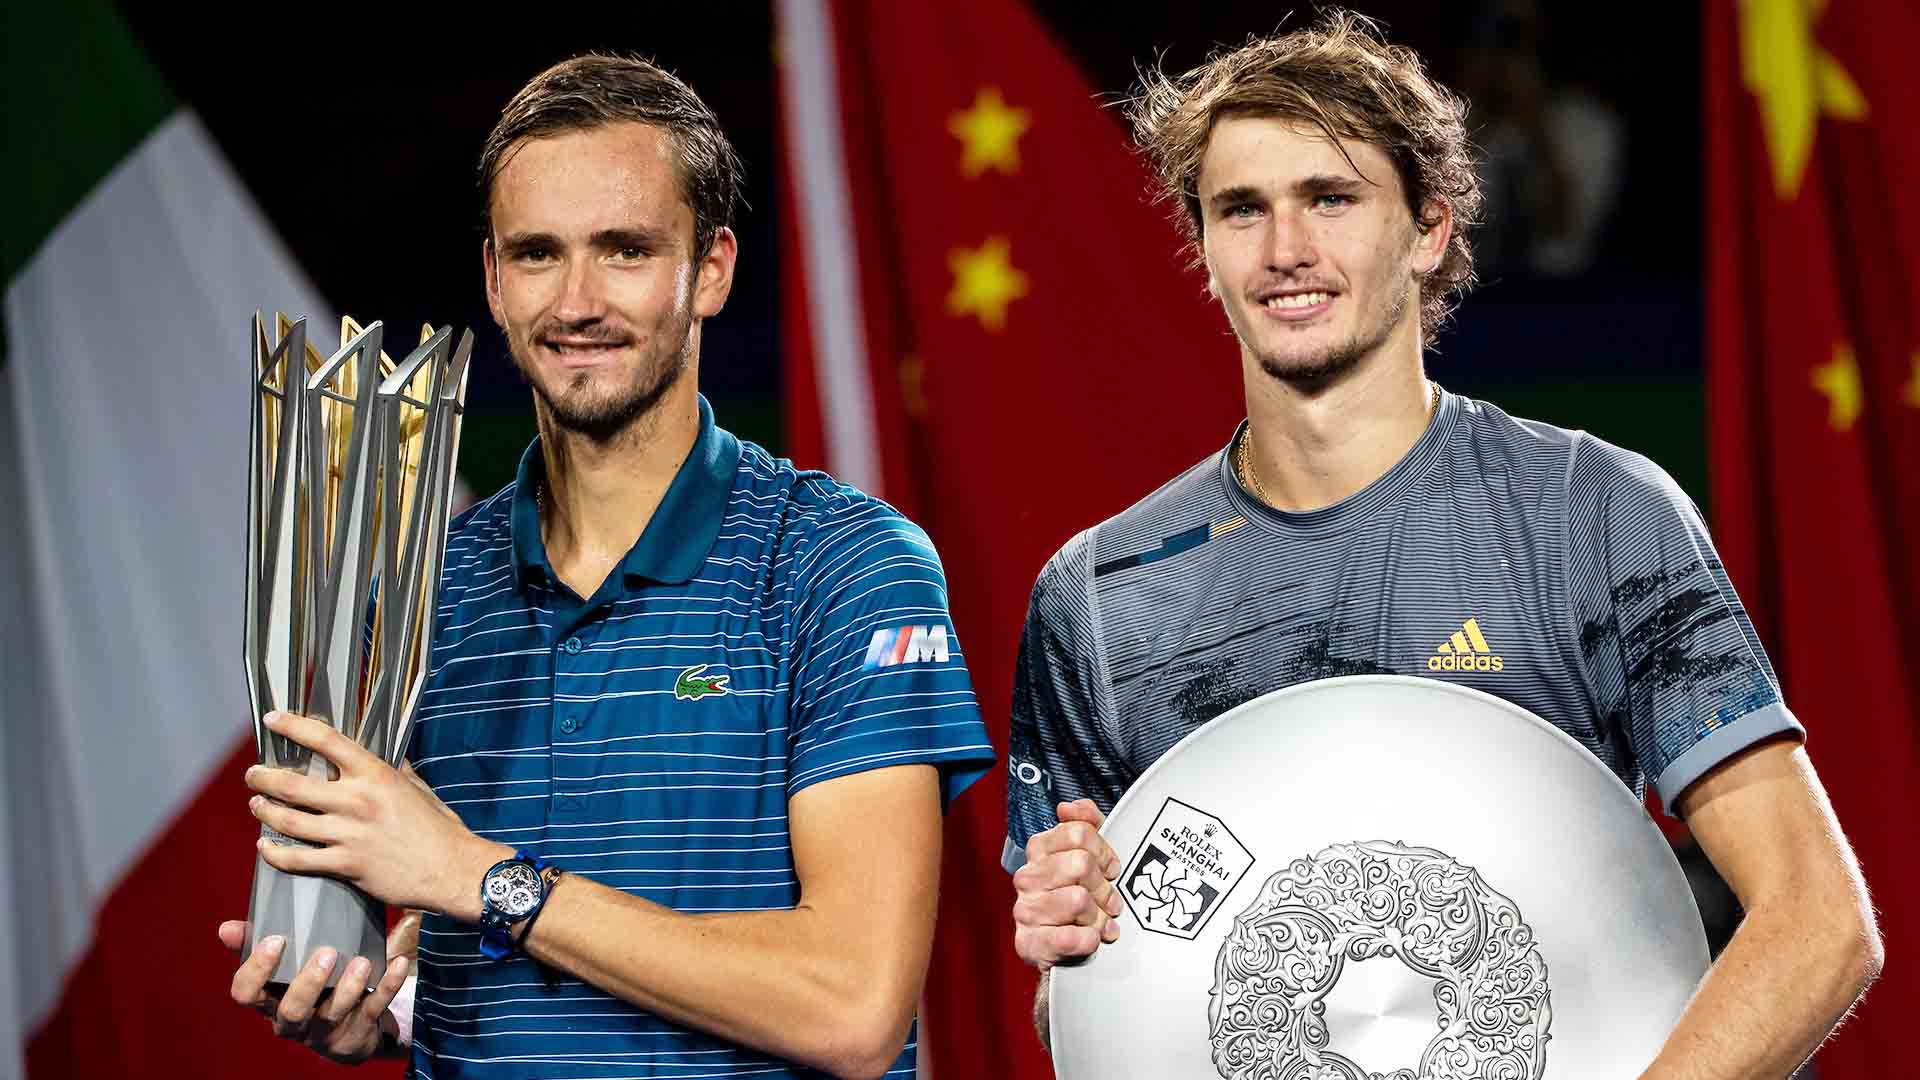 Daniil Medvedev and Alexander Zverev pose for photographs following the Rolex Shanghai Masters final.